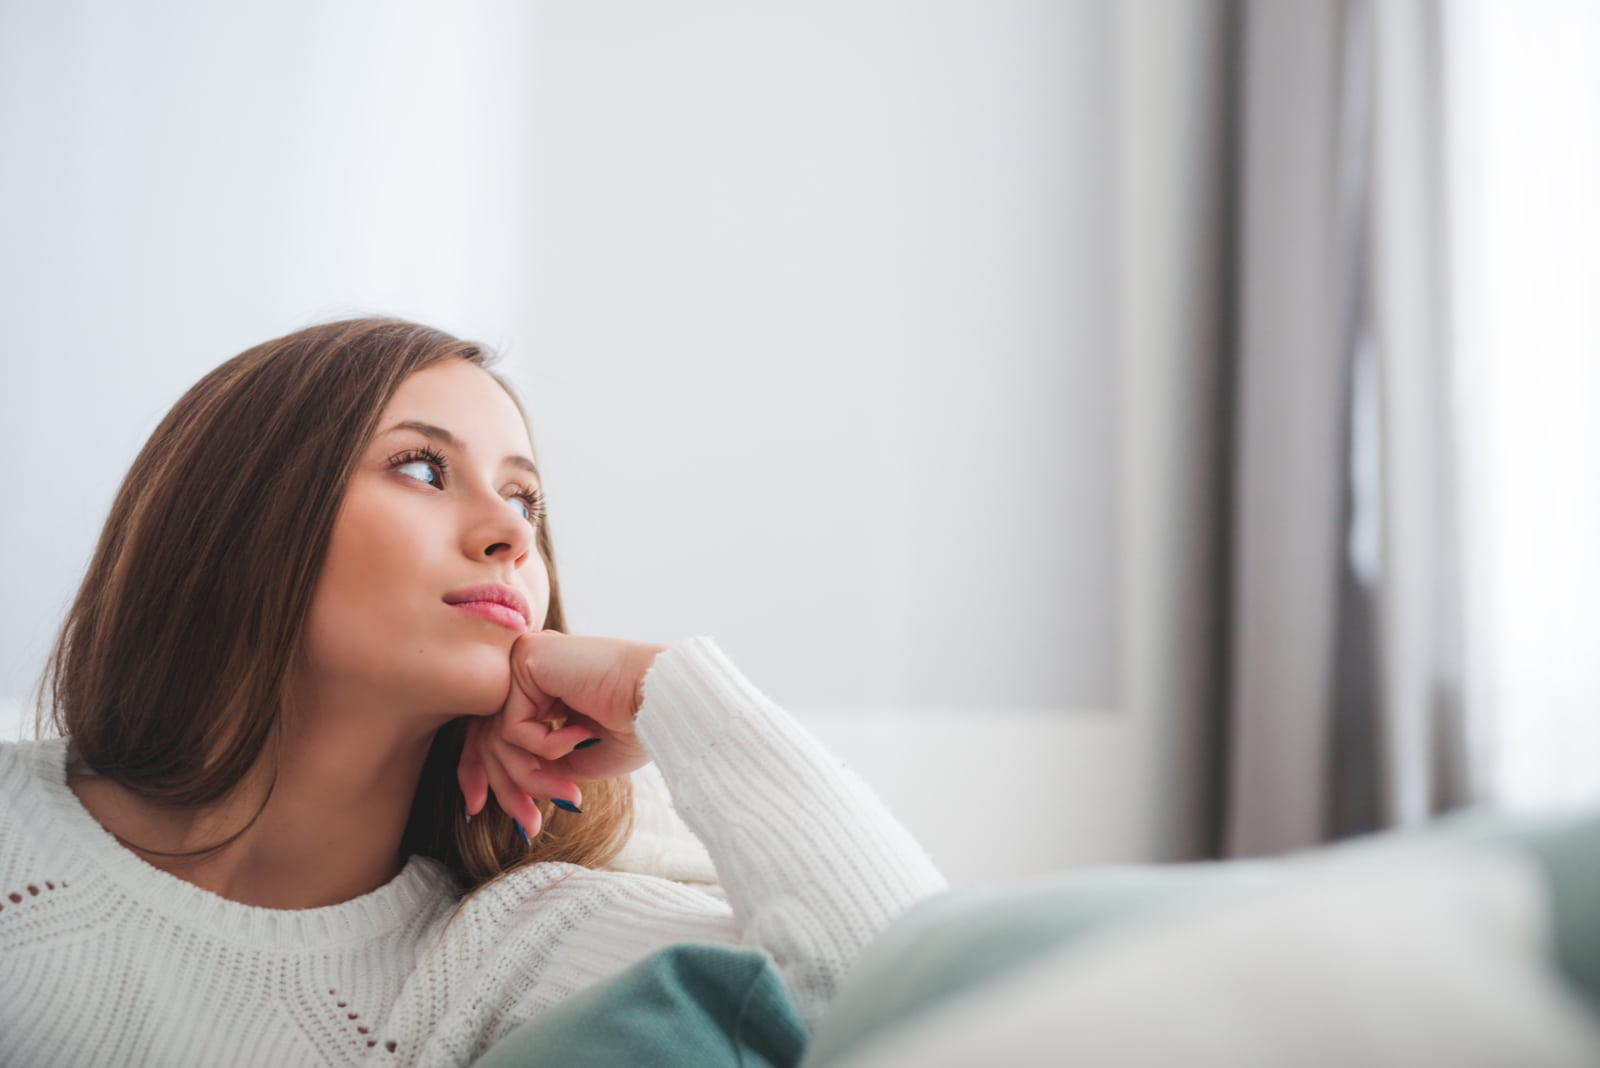 thoughtful woman at home looking at window